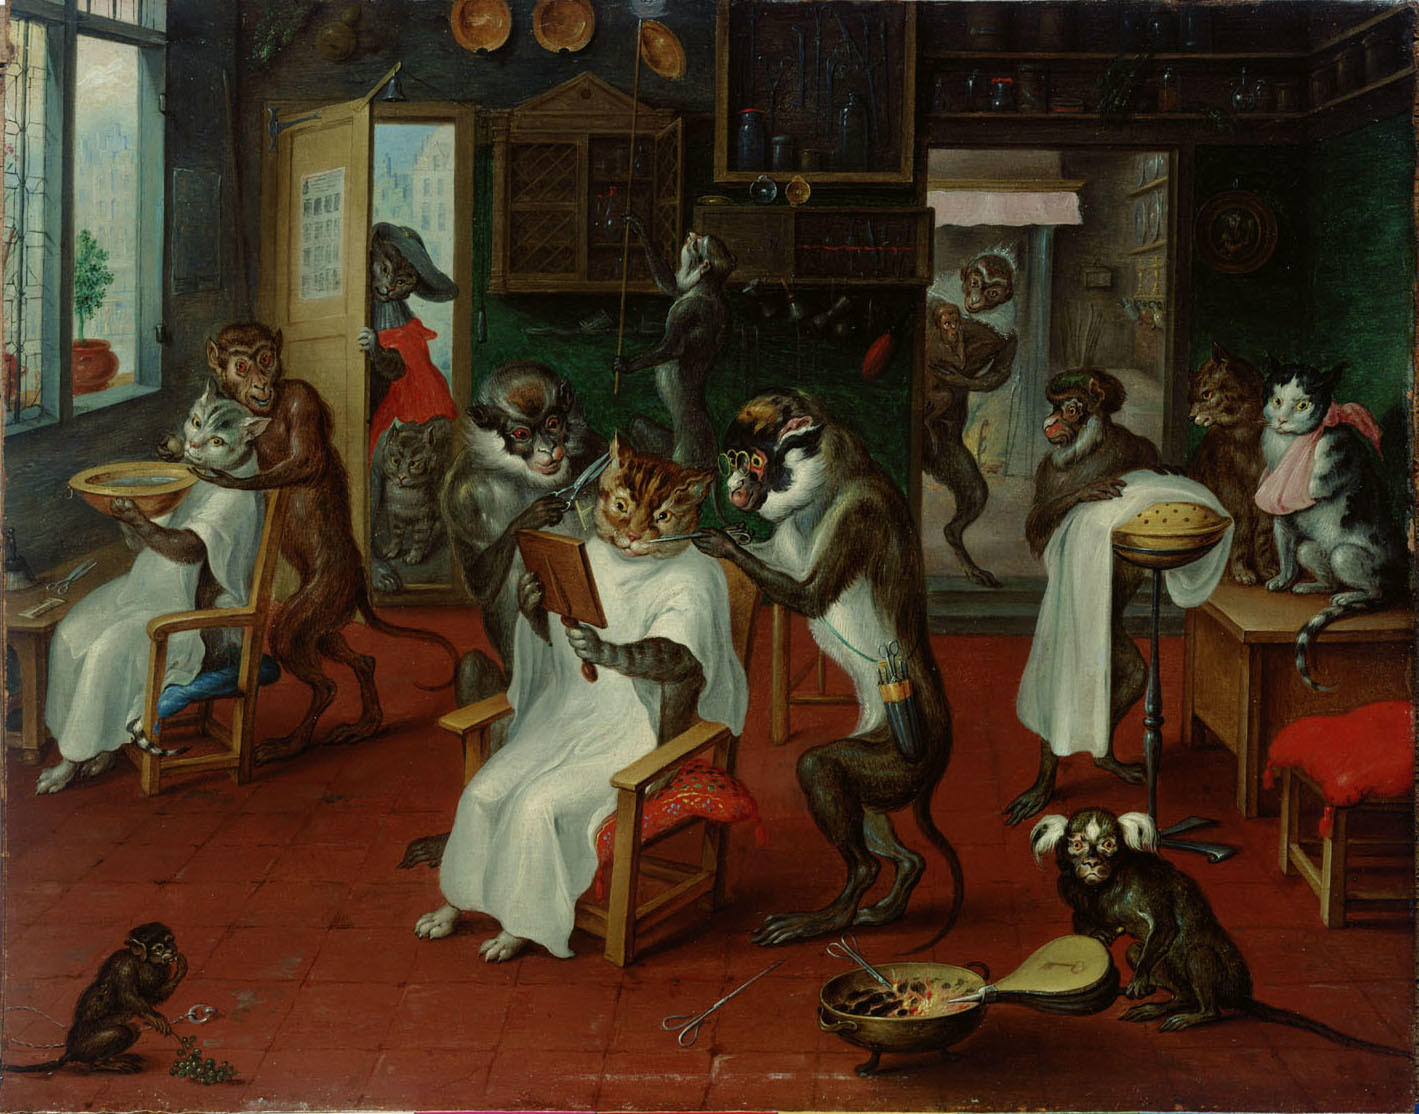 Abraham_Teniers_-_Barbershop_with_monkeys_and_cats.jpg